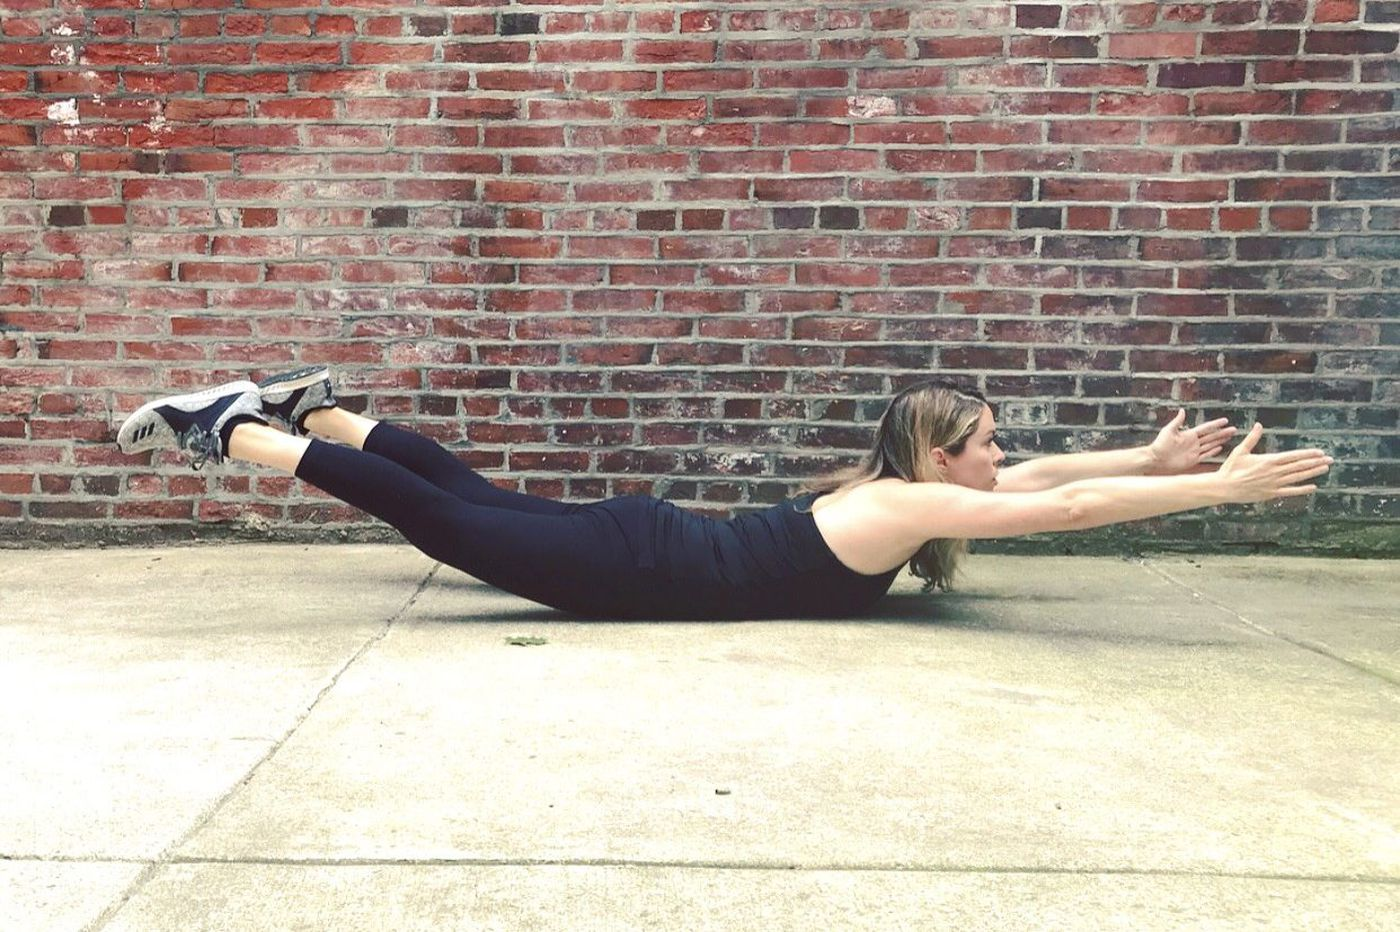 How to build a well-rounded weekly workout plan